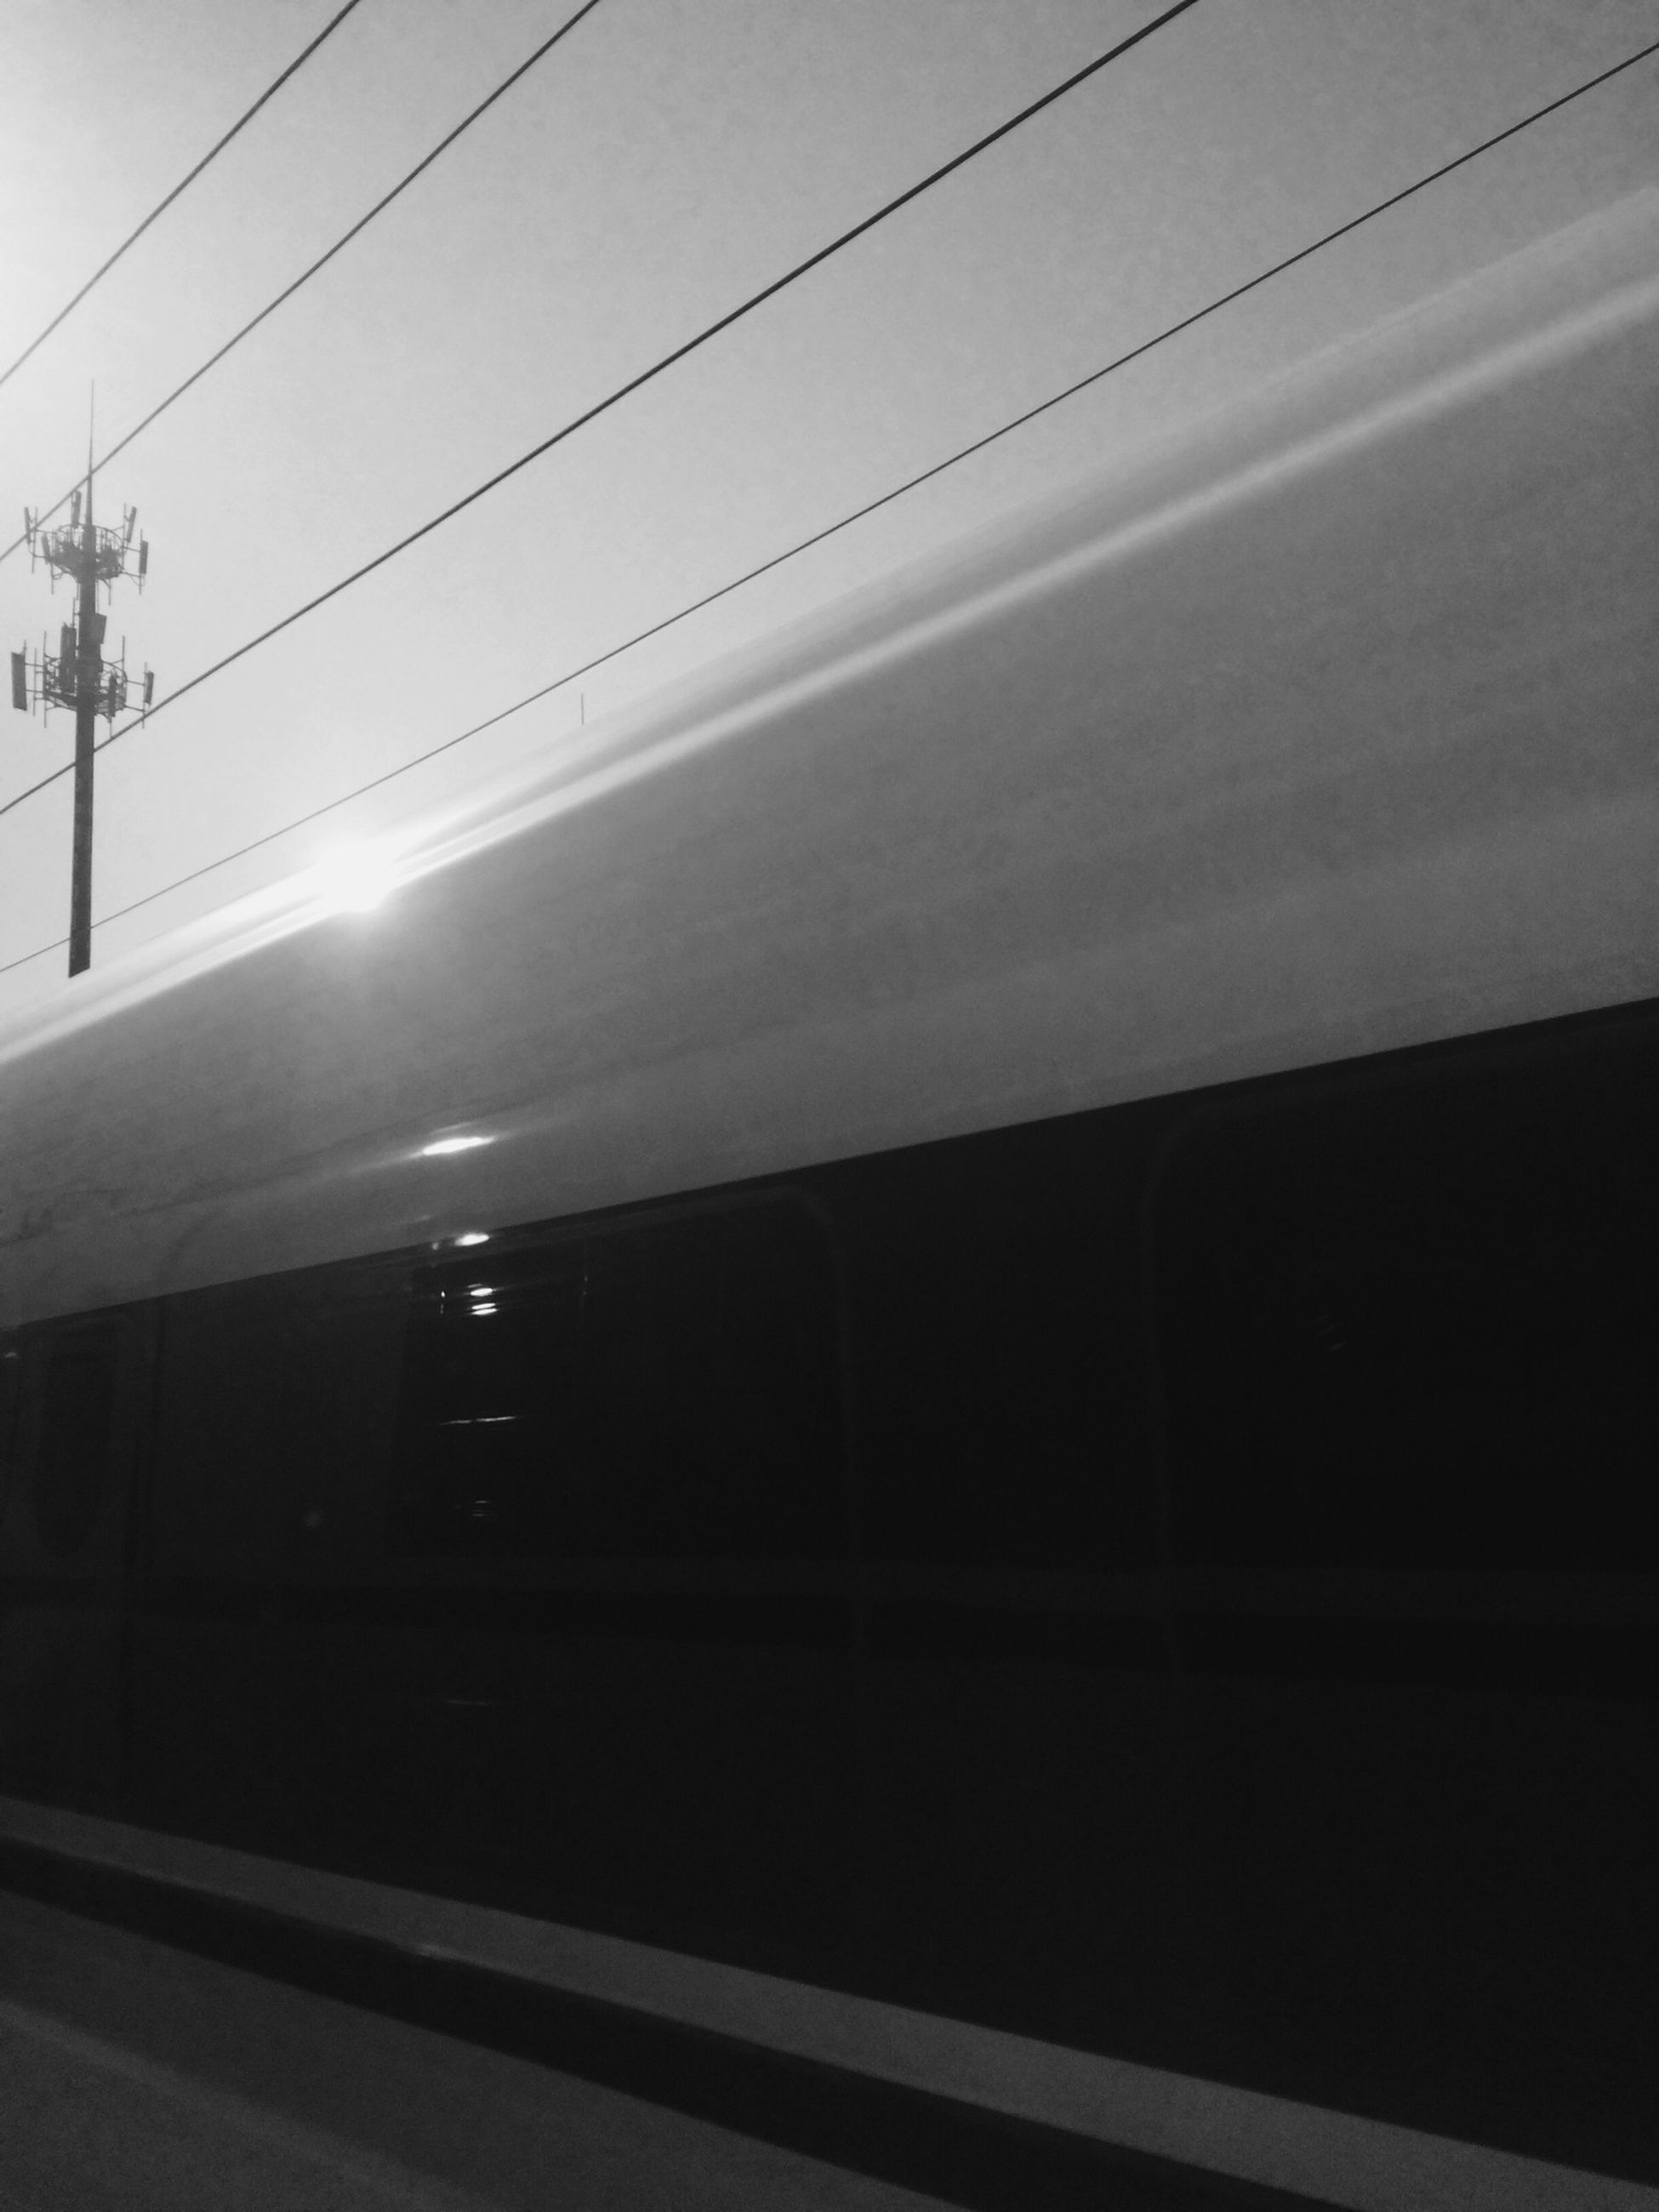 transportation, mode of transport, public transportation, rail transportation, railroad station platform, railroad track, connection, road, railroad station, train - vehicle, sky, land vehicle, built structure, travel, on the move, power line, car, architecture, illuminated, indoors